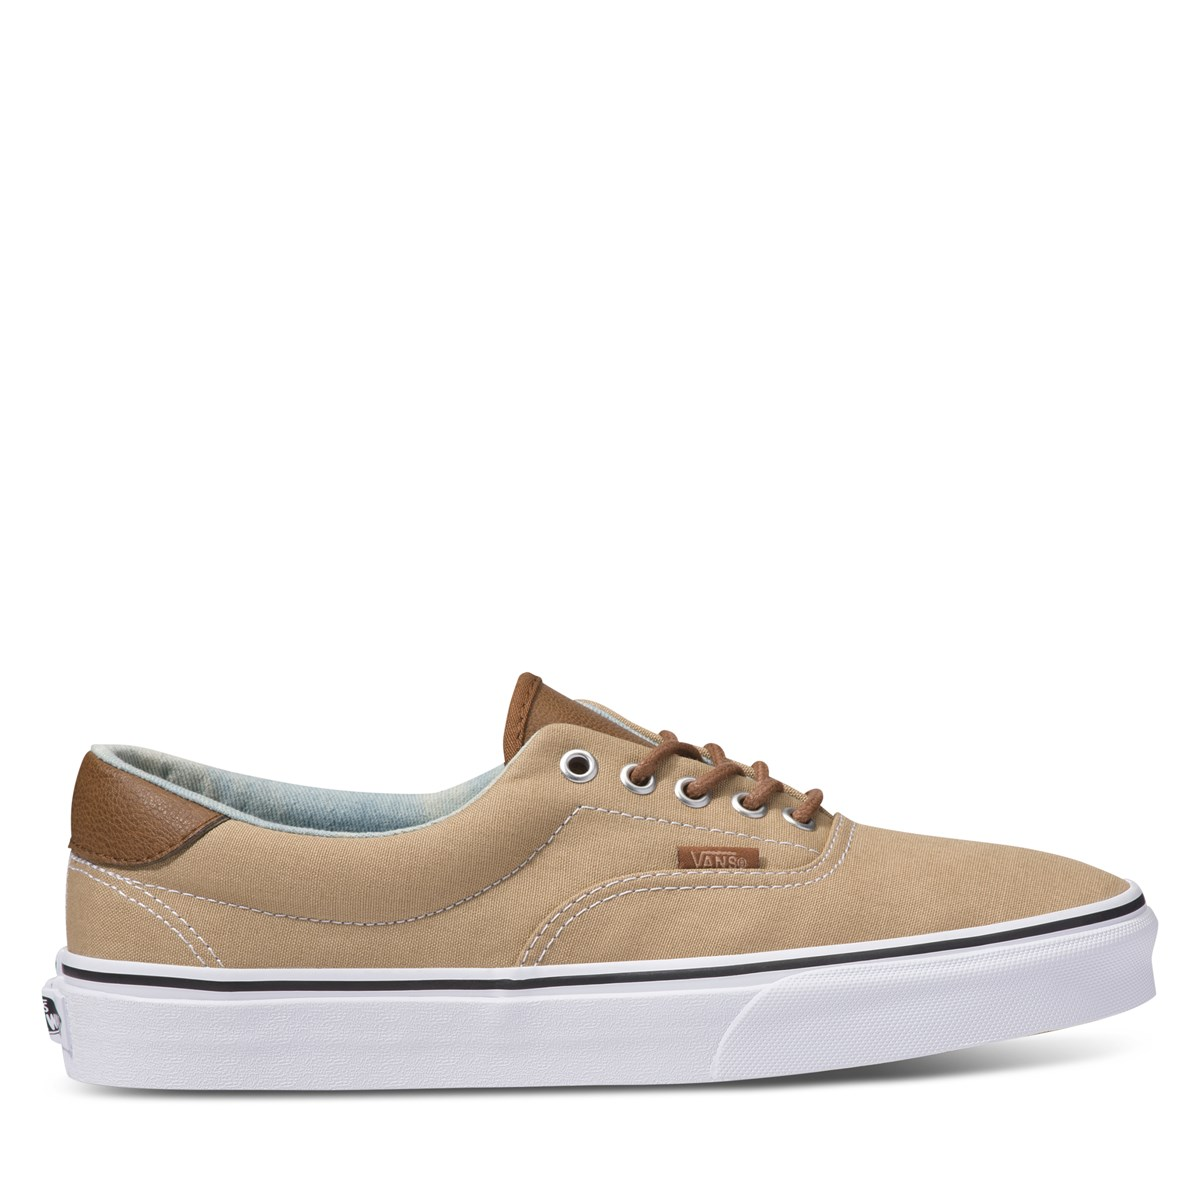 Men's C&L Era 59 Sneakers in Beige